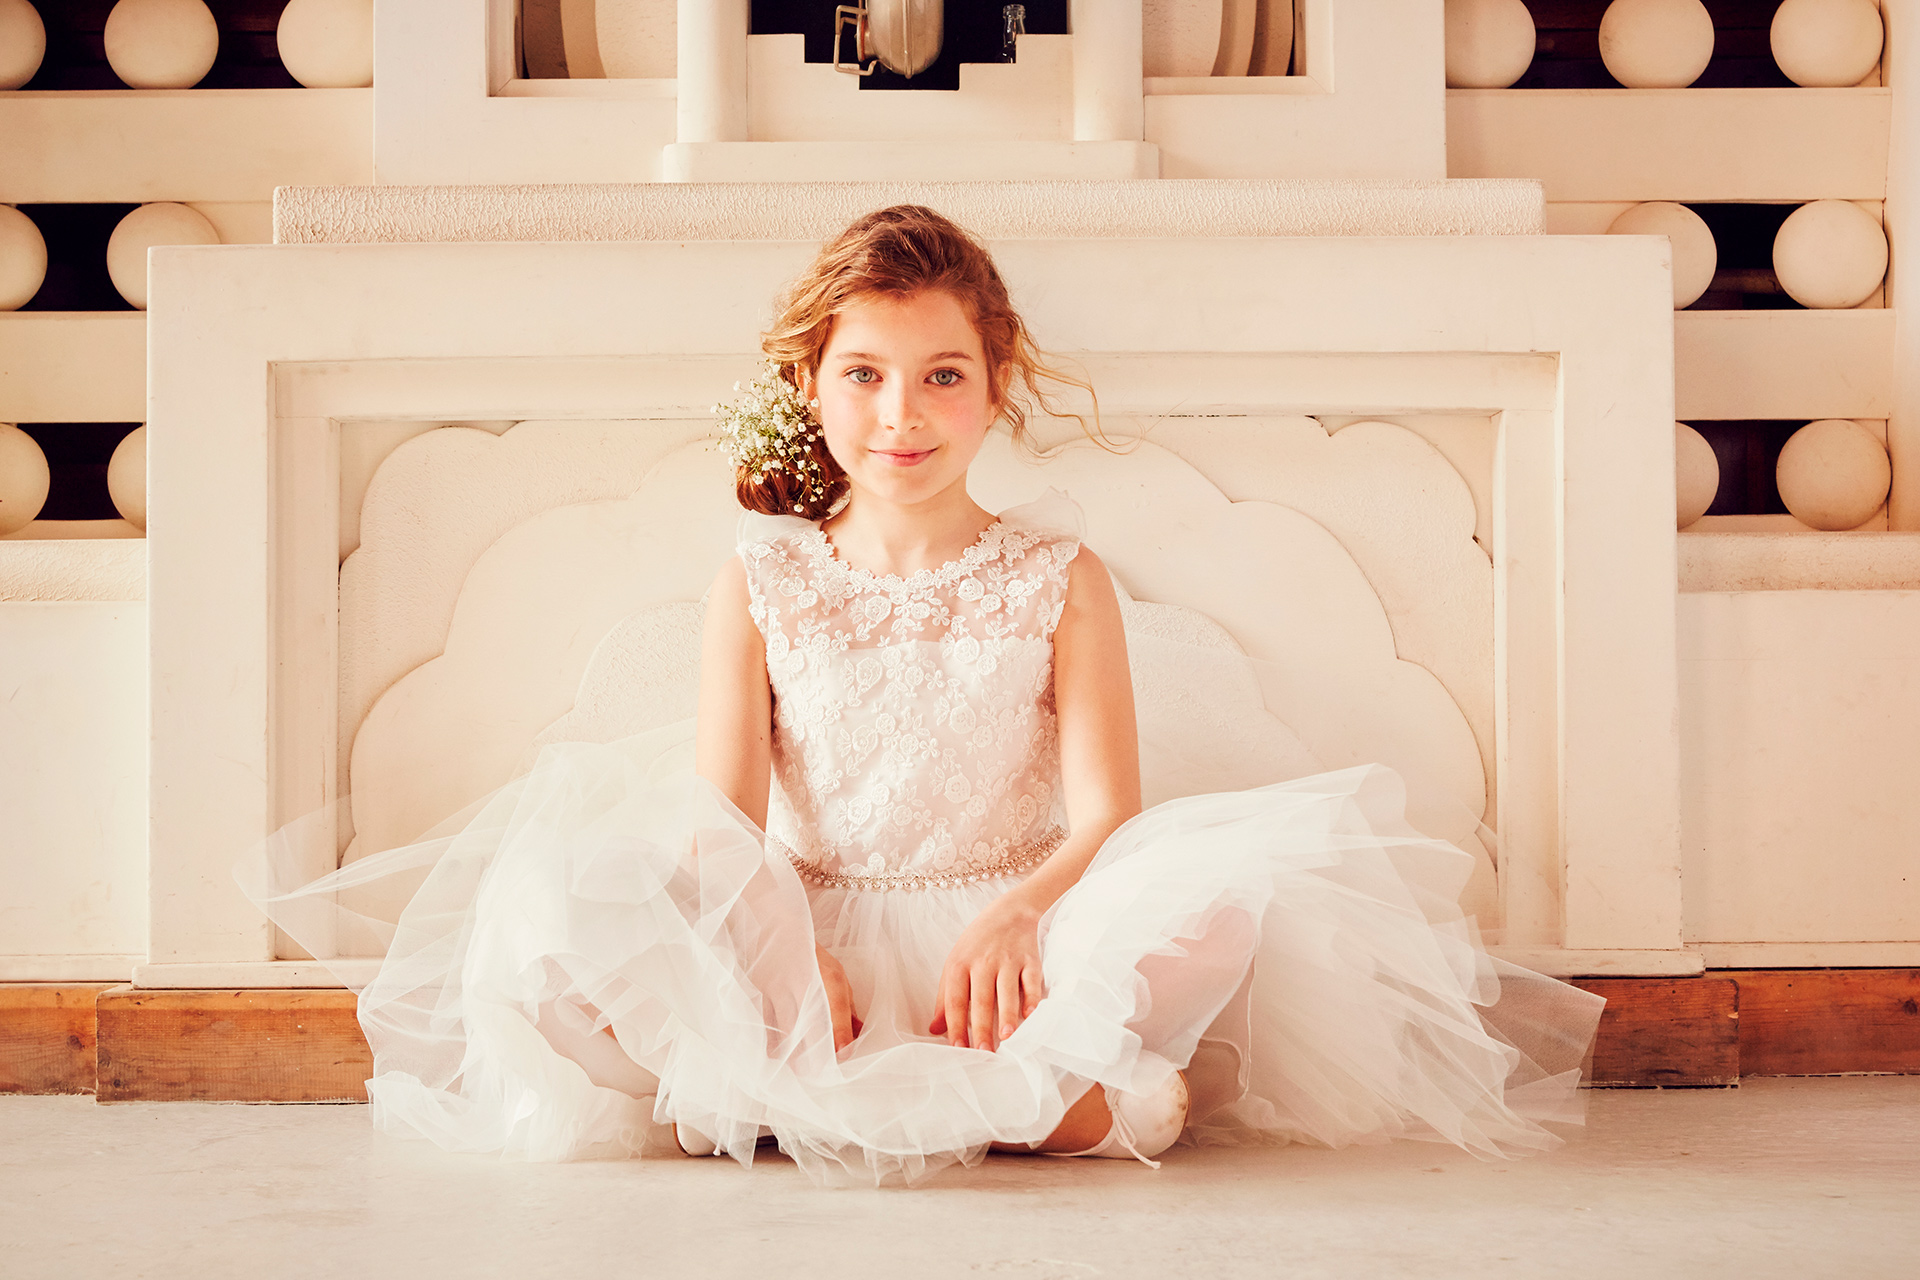 girls fashion kids occasionwear sitting ornate